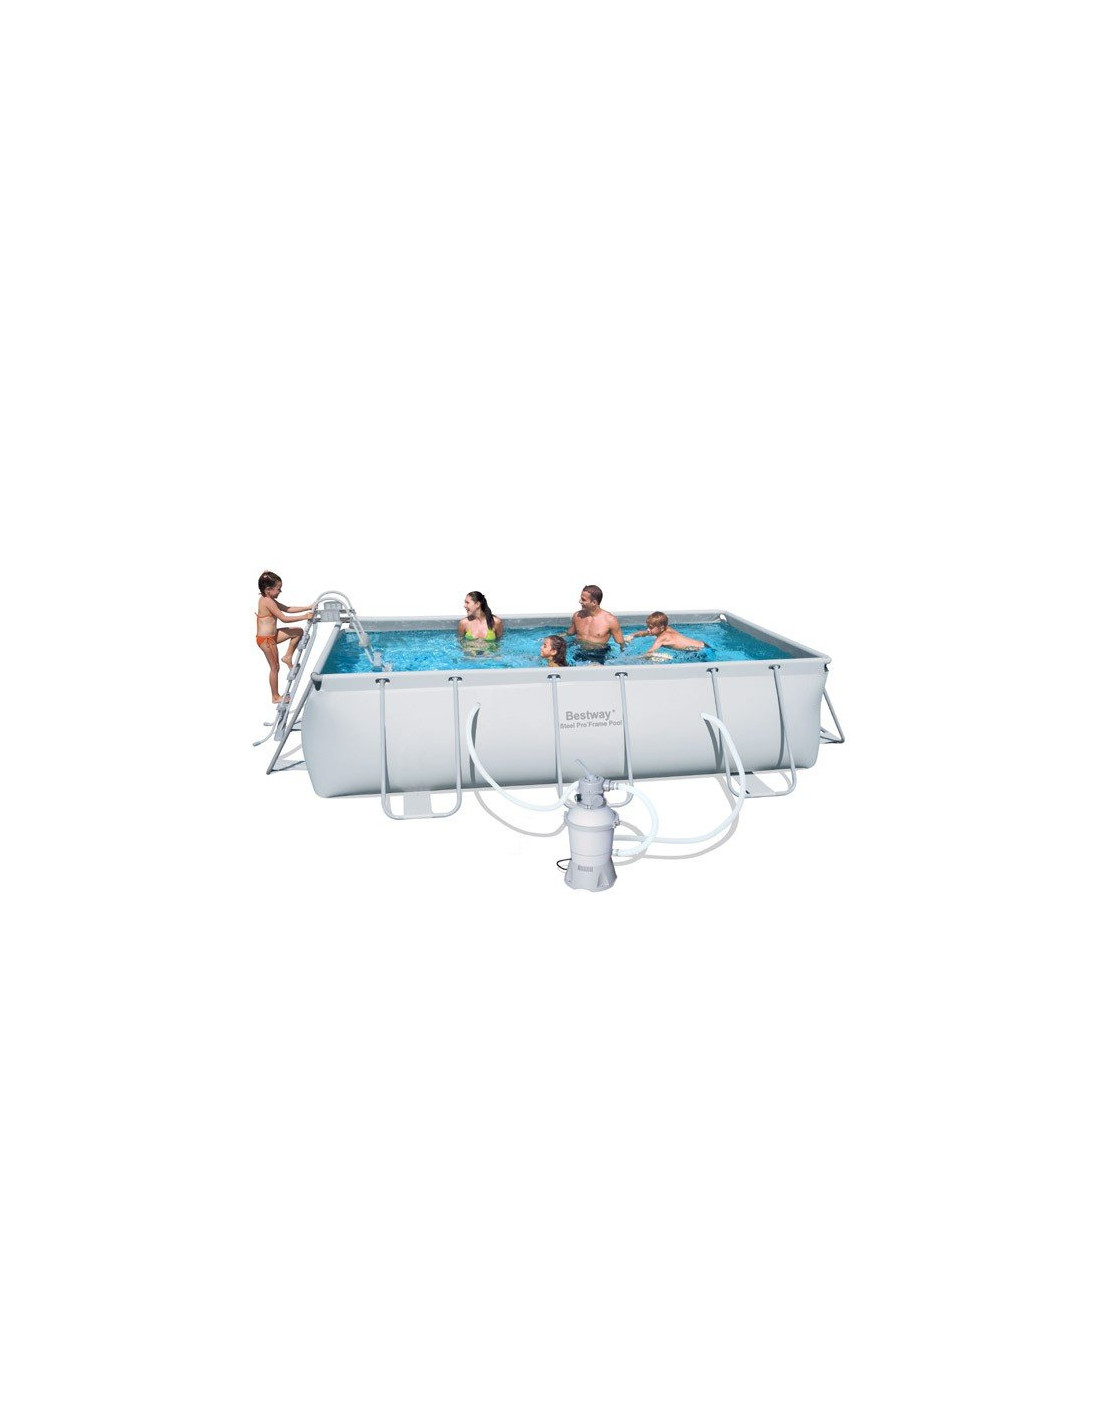 Piscine tubulaire rectangulaire bestway avec filtre sable for Piscine hors sol tubulaire amazon